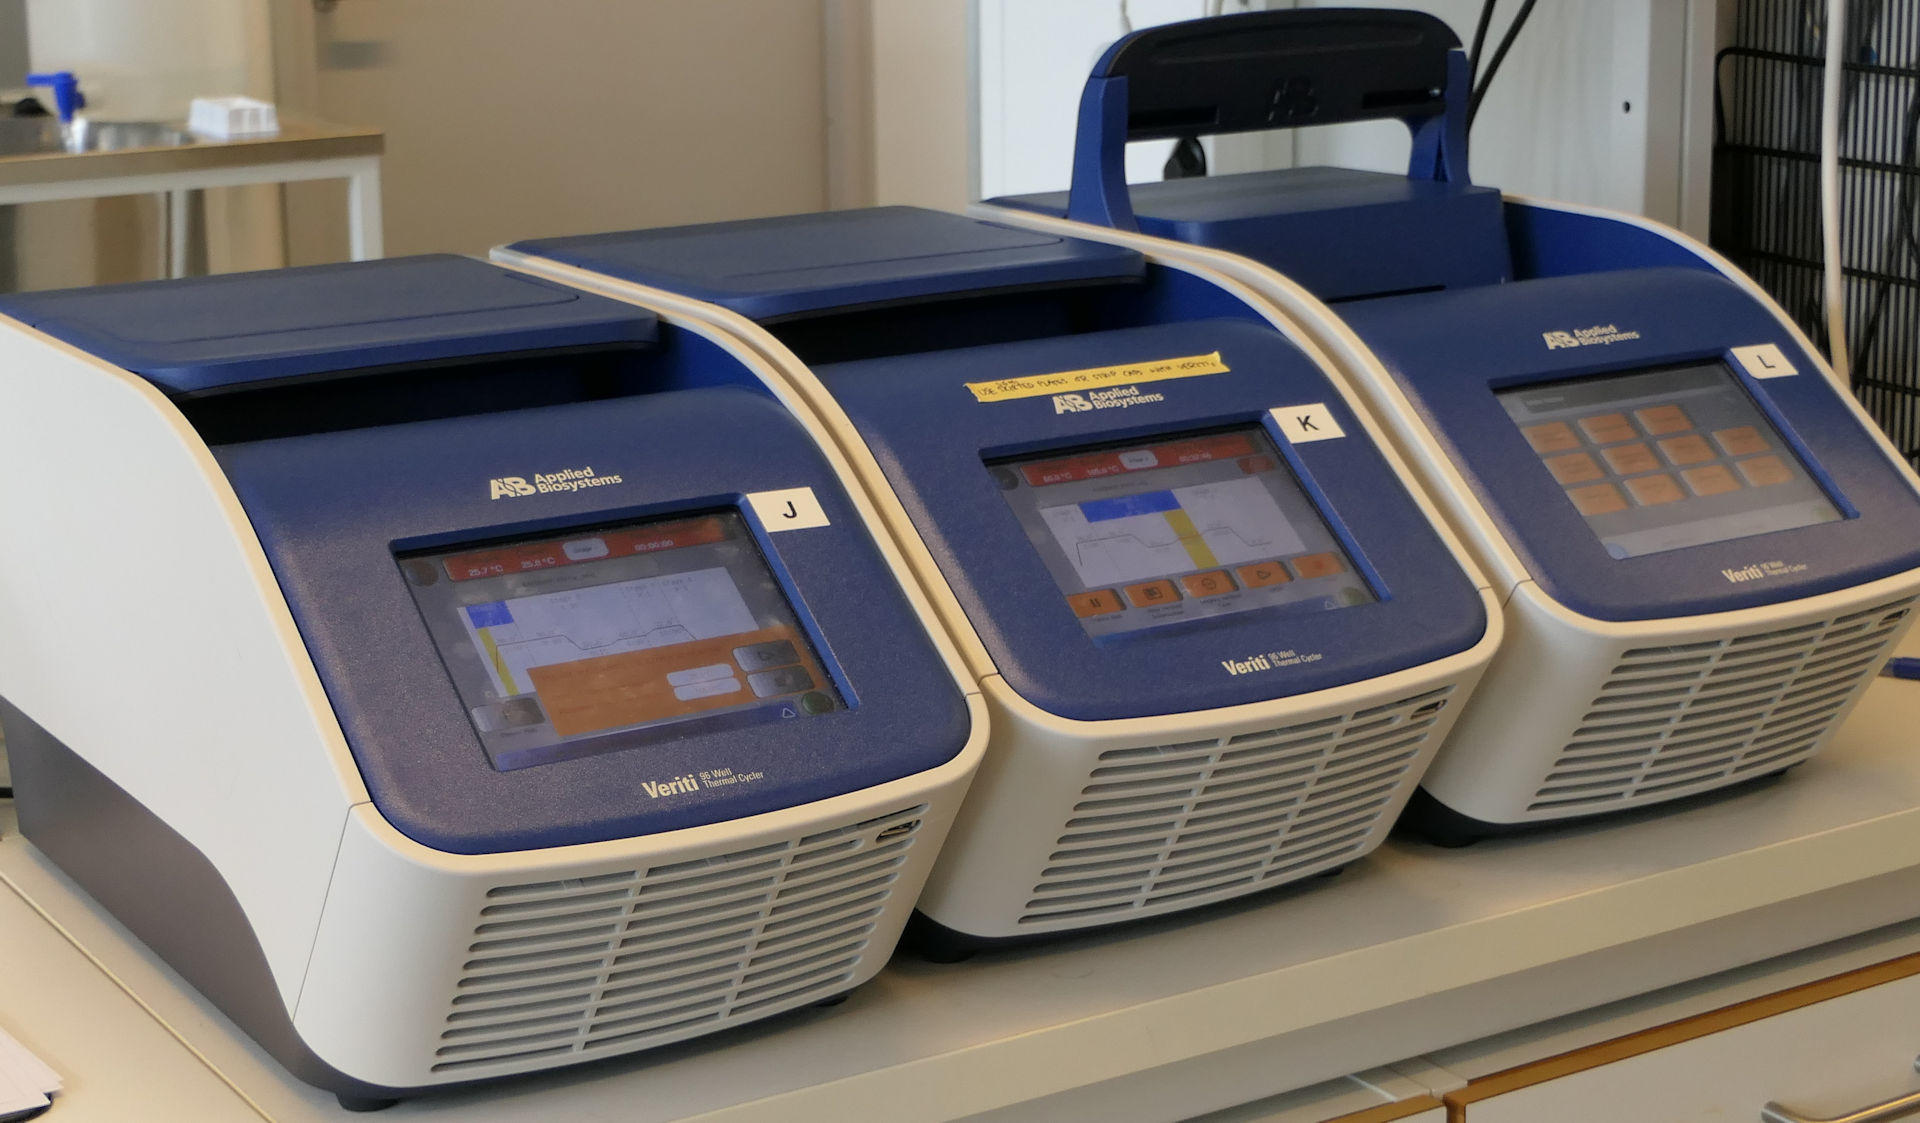 These Verity PCR machines can be foun in Molecular Ecology and Systematics laboratory (MES Lab).